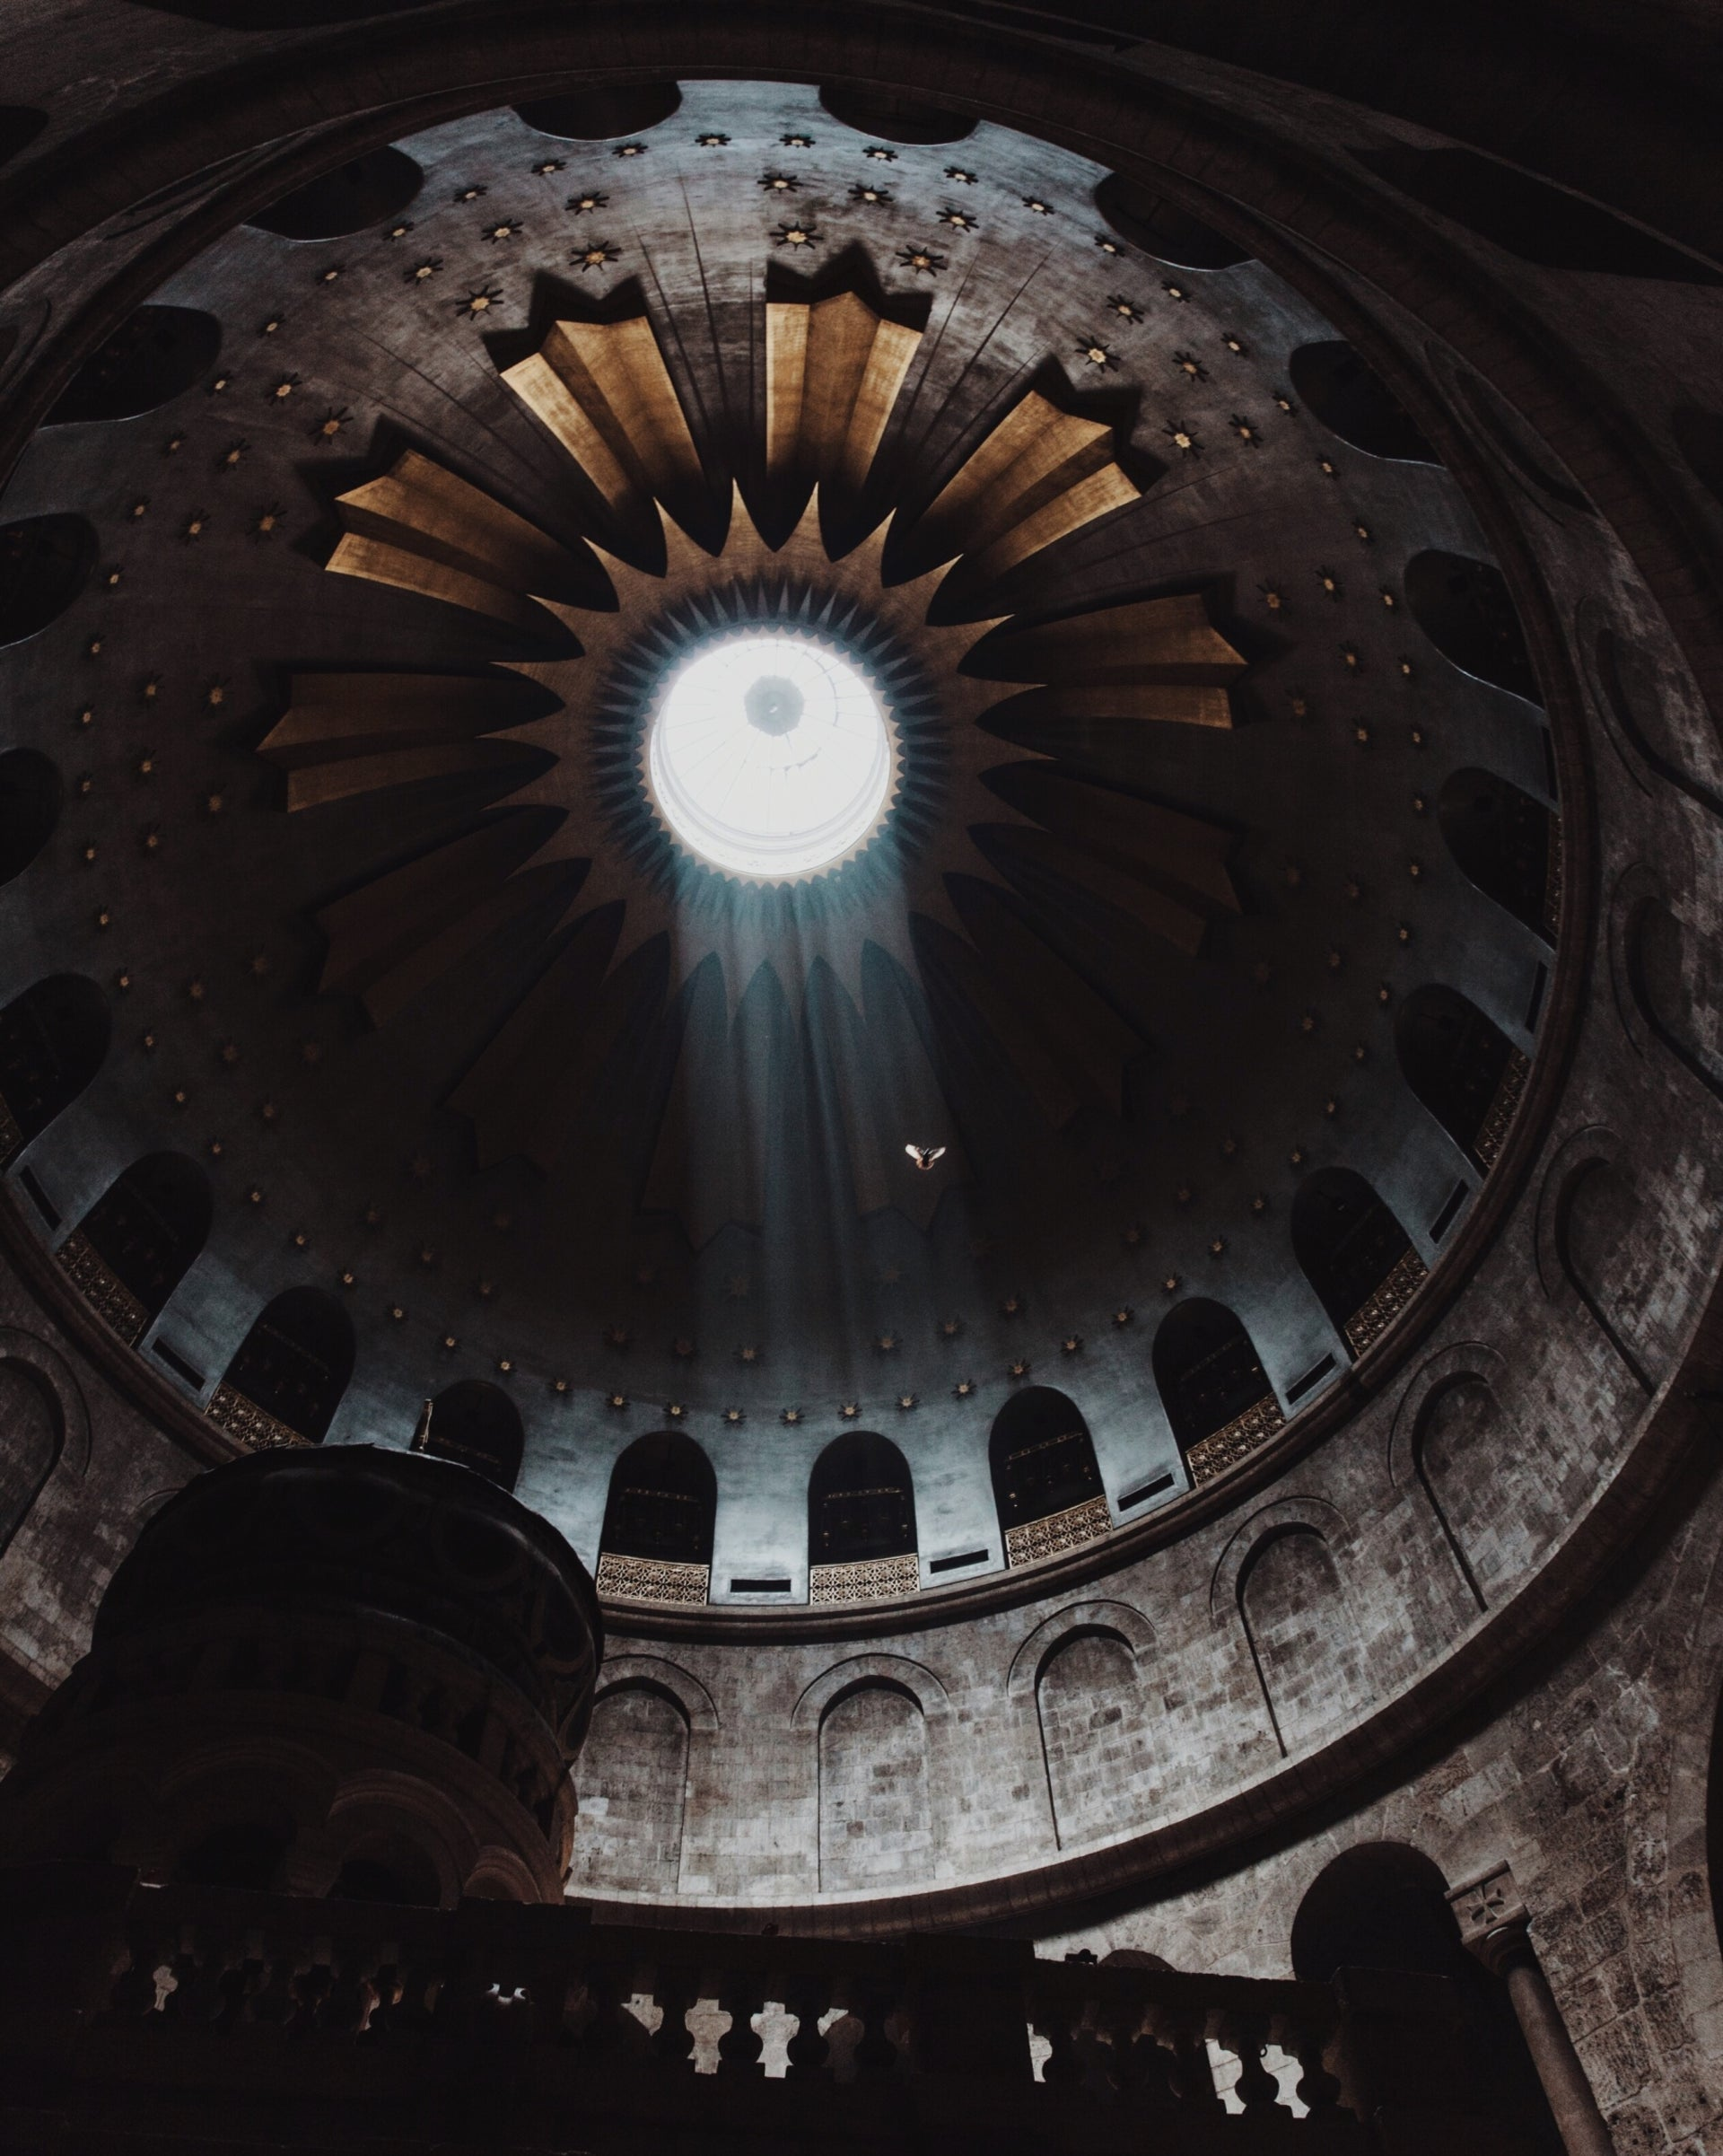 The Church of the Holy Sepulchre in Jerusalem's Old City.